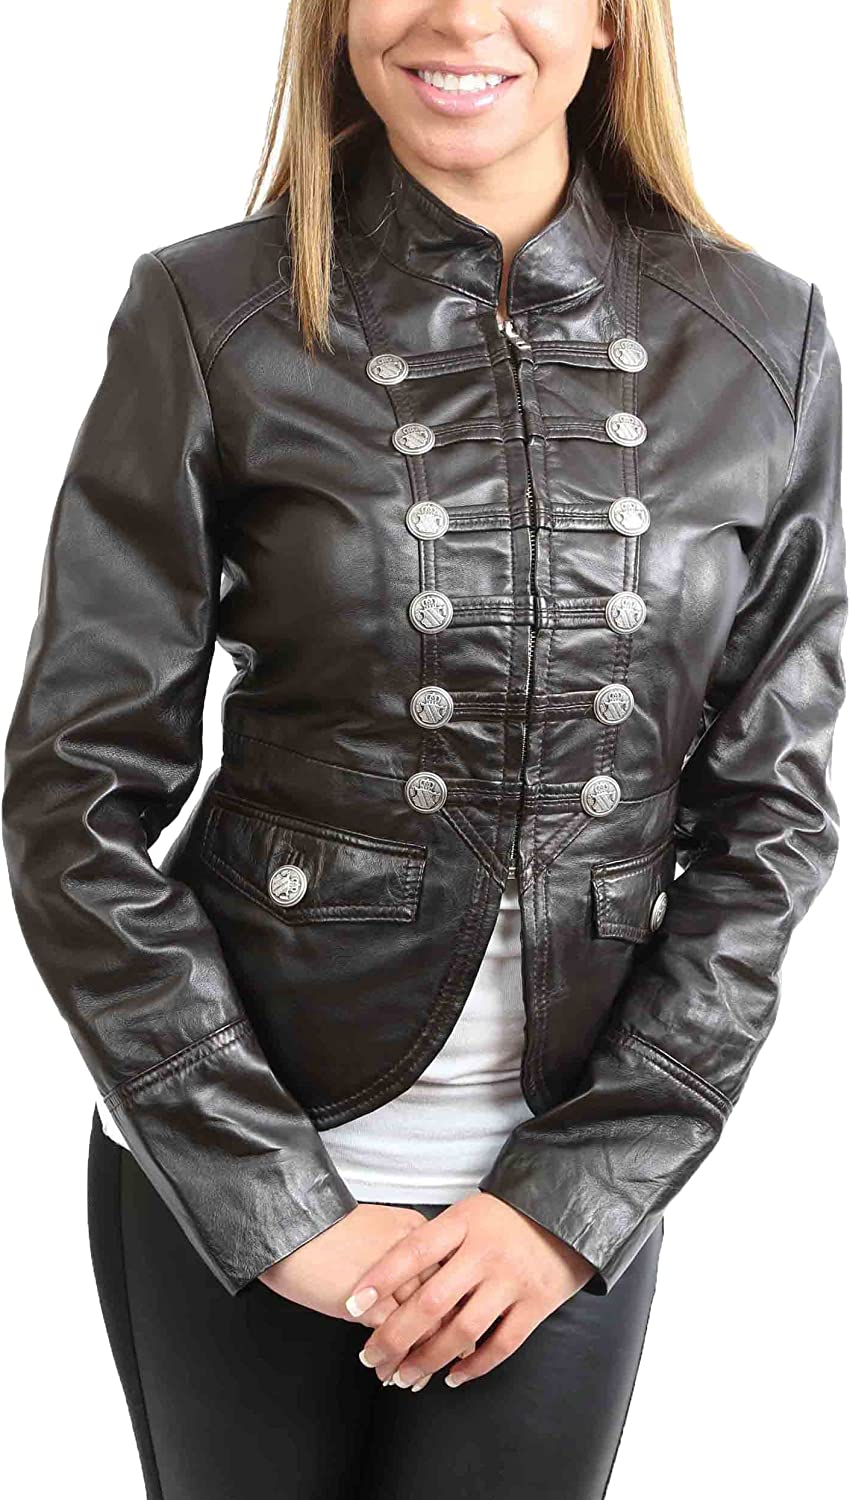 A1 FASHION GOODS Womens Leather Casual Jacket Military Punk Style Black Coat Aria